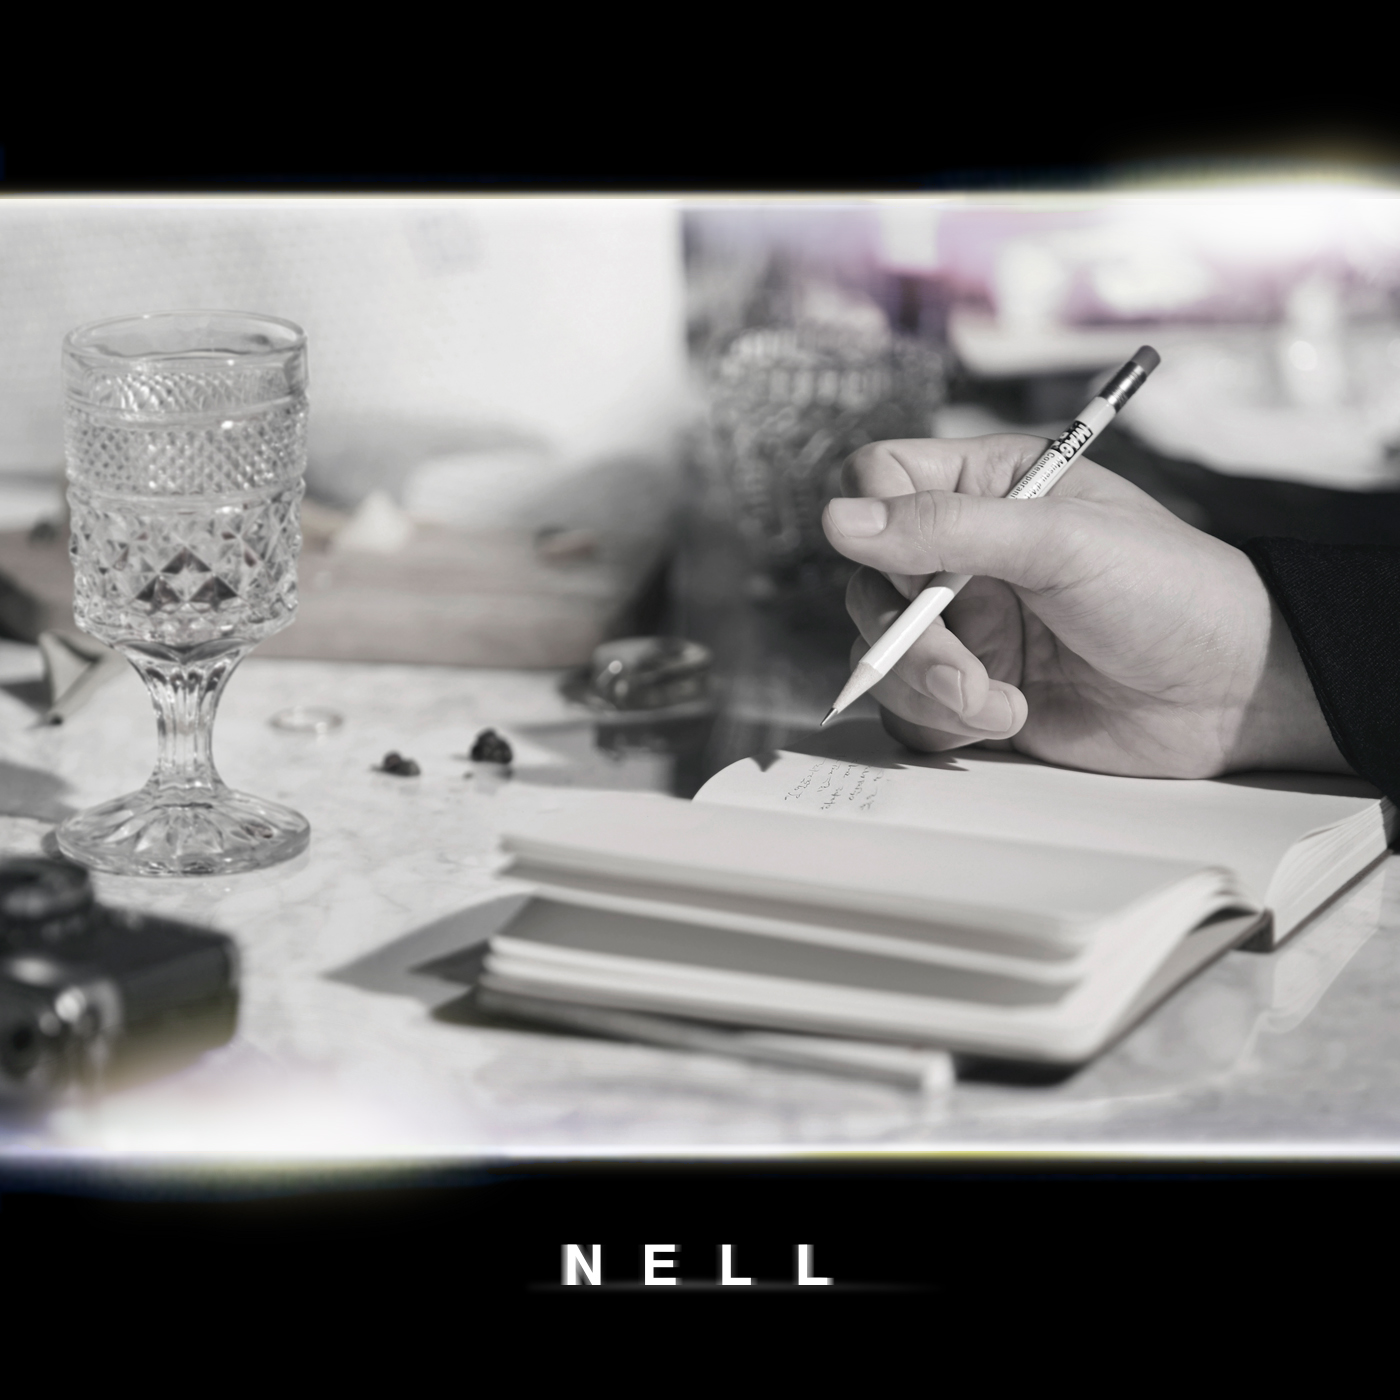 NELL give a taste of their upcoming album through 'Lost in Perspective'